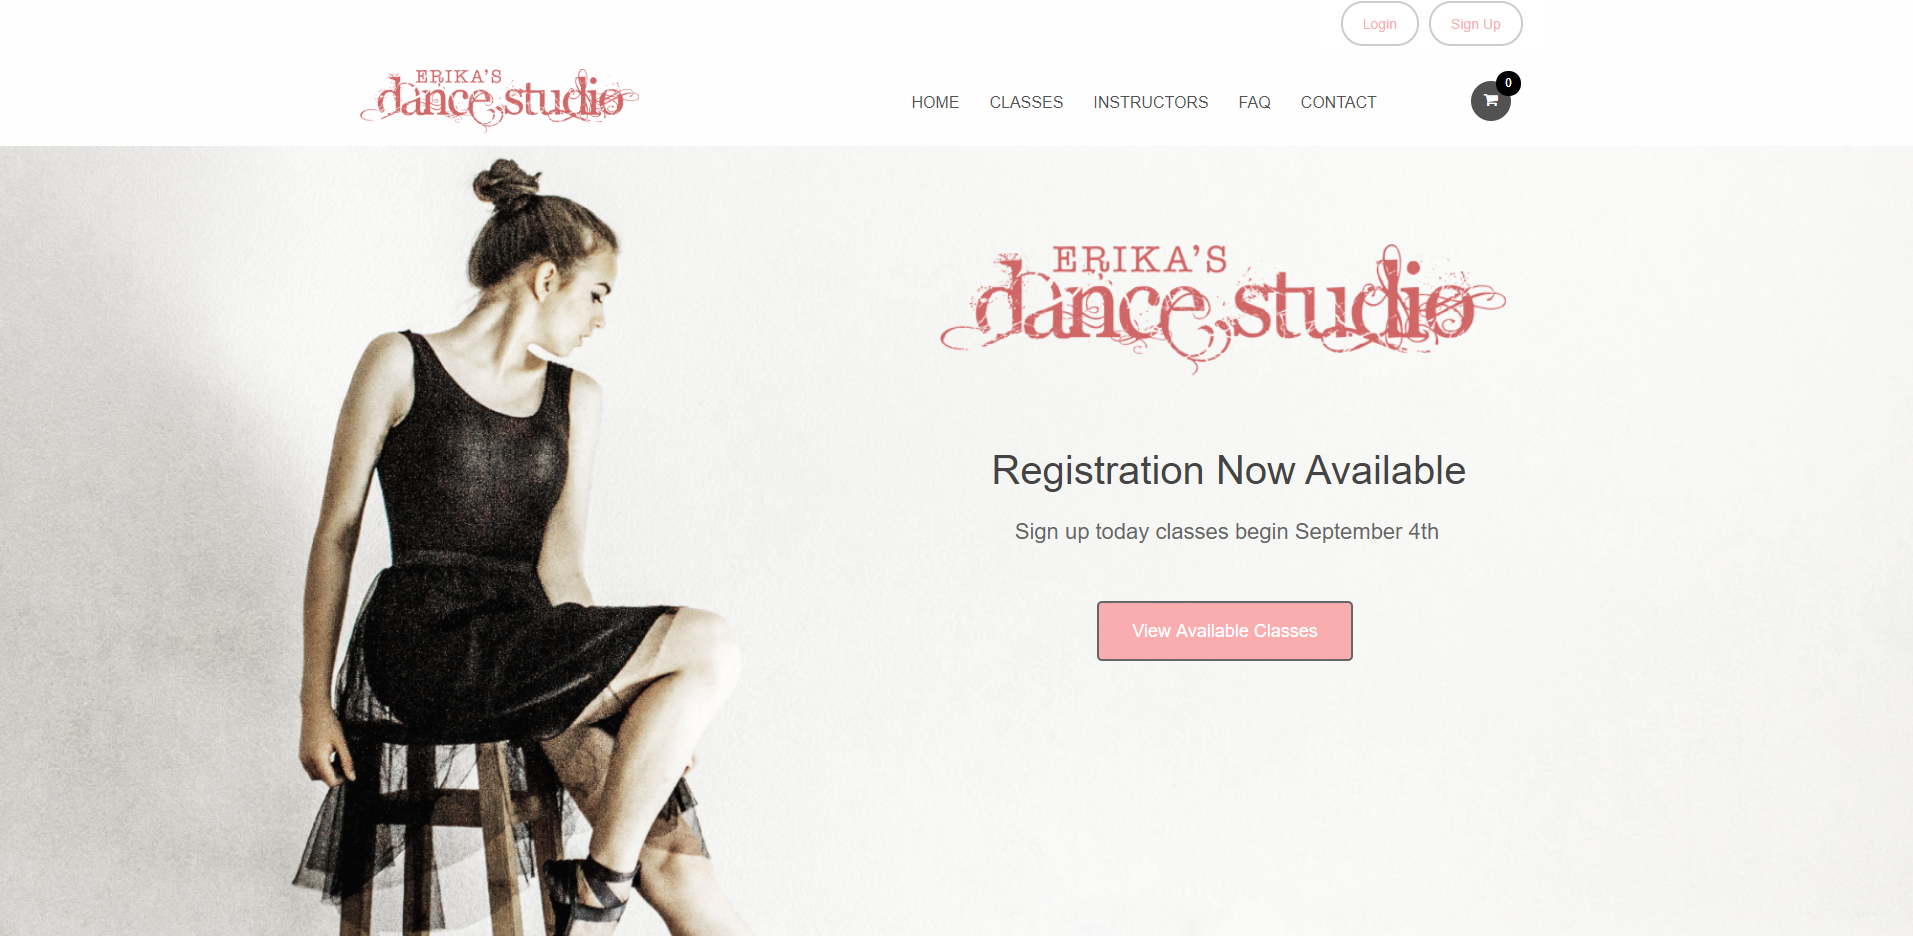 Image of Erika's Dance Studio website displaying the Web Design by EliteWorks Premium Support